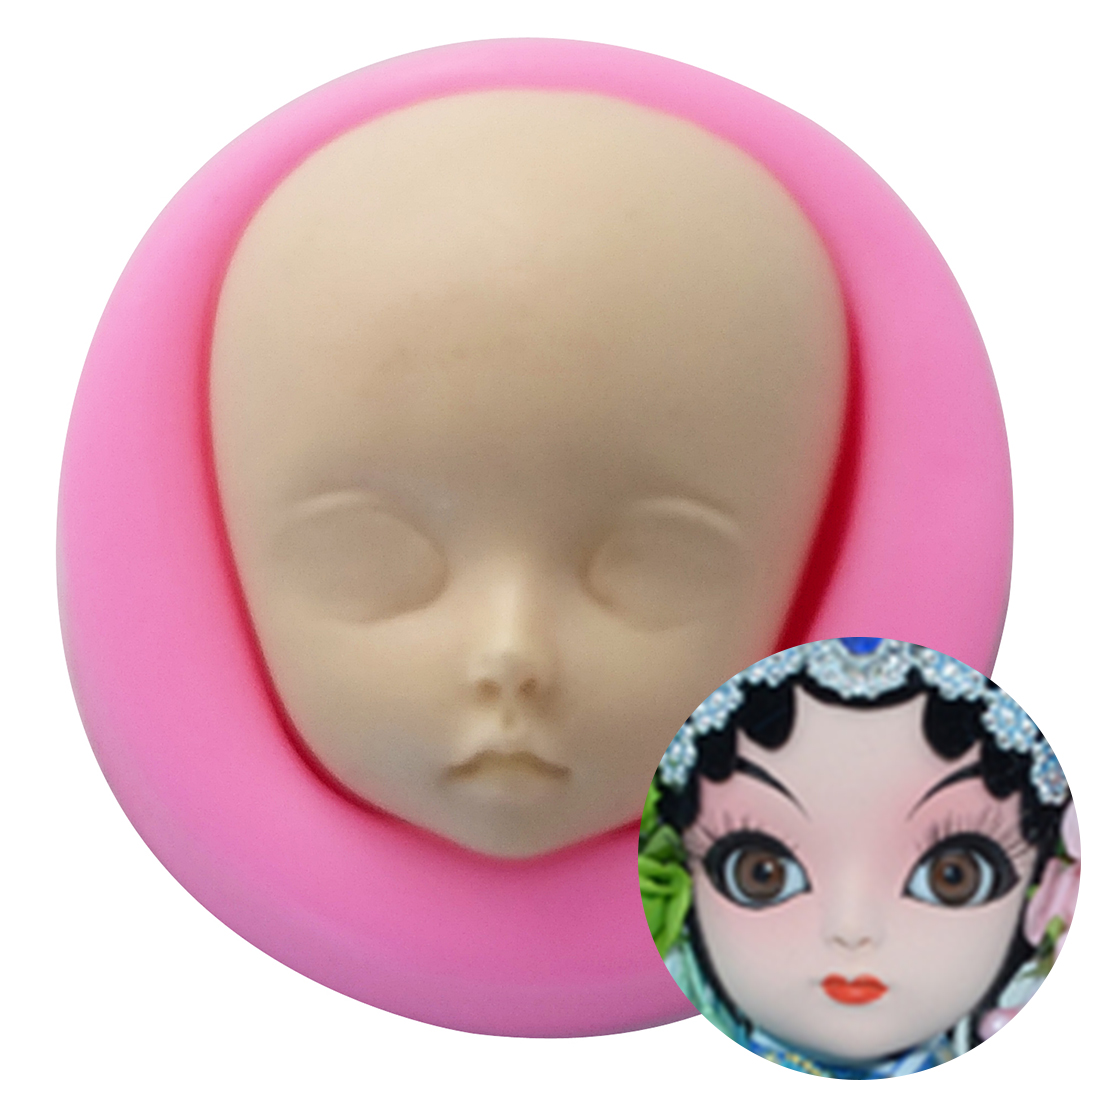 Baby Face Silicone Mold Polymer Clay Craft Moulds Handmade Dolls Face Making